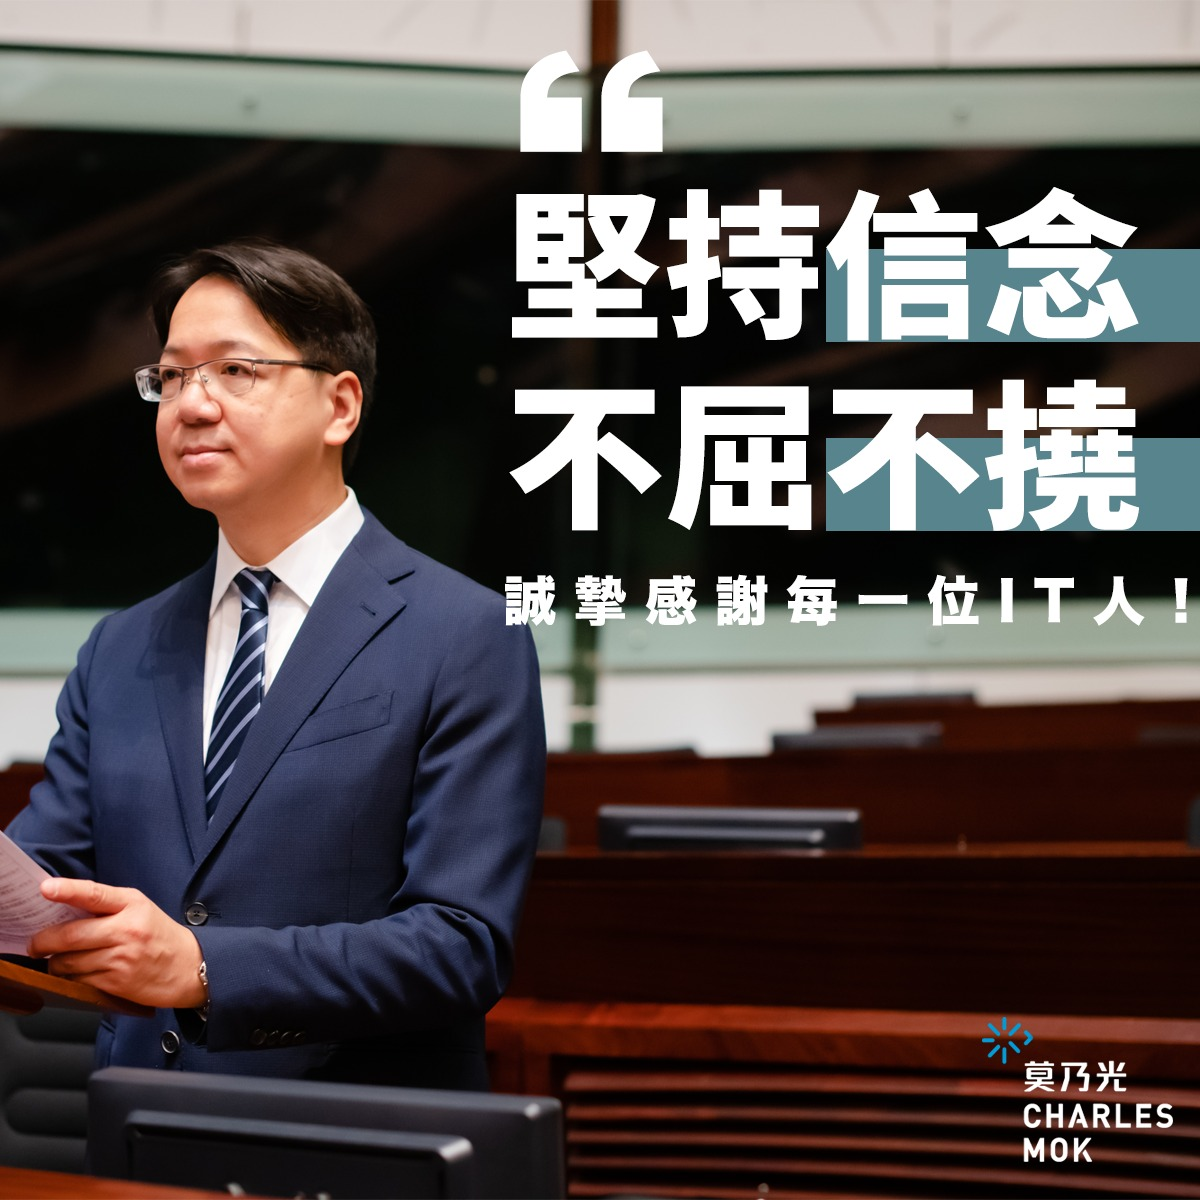 link to [Press release] Charles Mok's response to the consultation papers on Archives Law and Access to Information (Chinese version only)